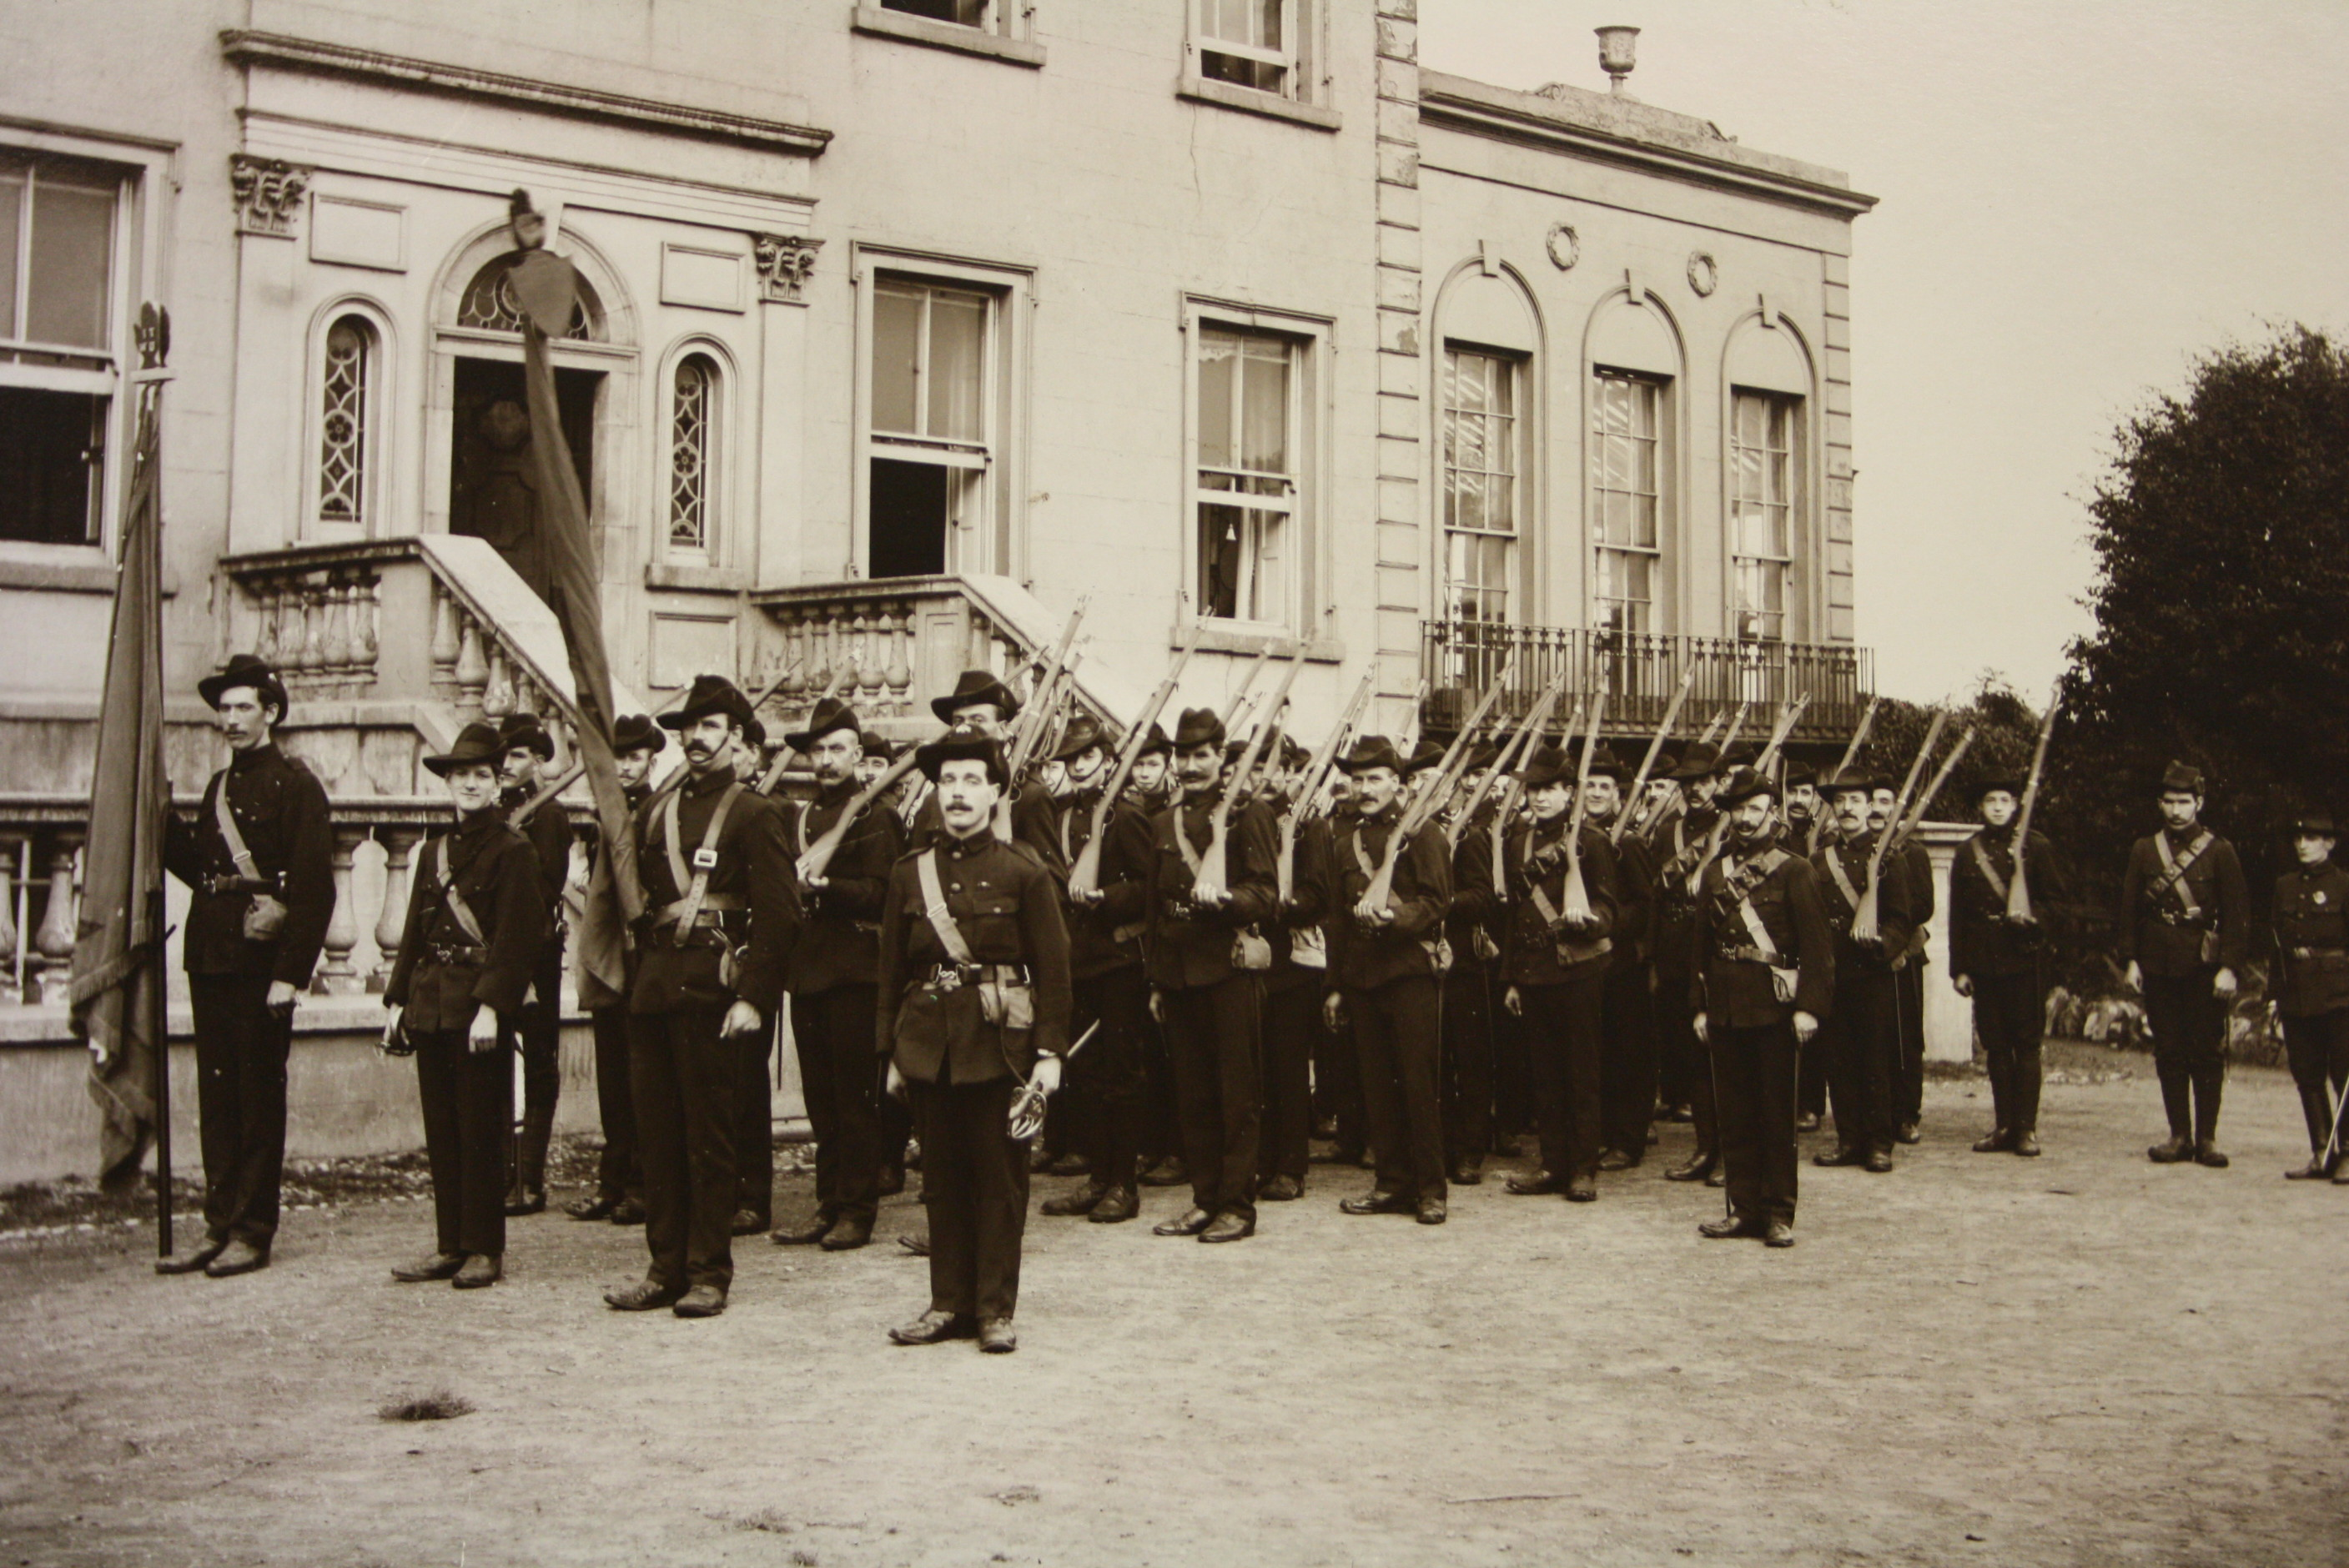 ICA at Croydon Park, 1914. Photograph by Keogh Brothers of Dublin. (NMI Collection)